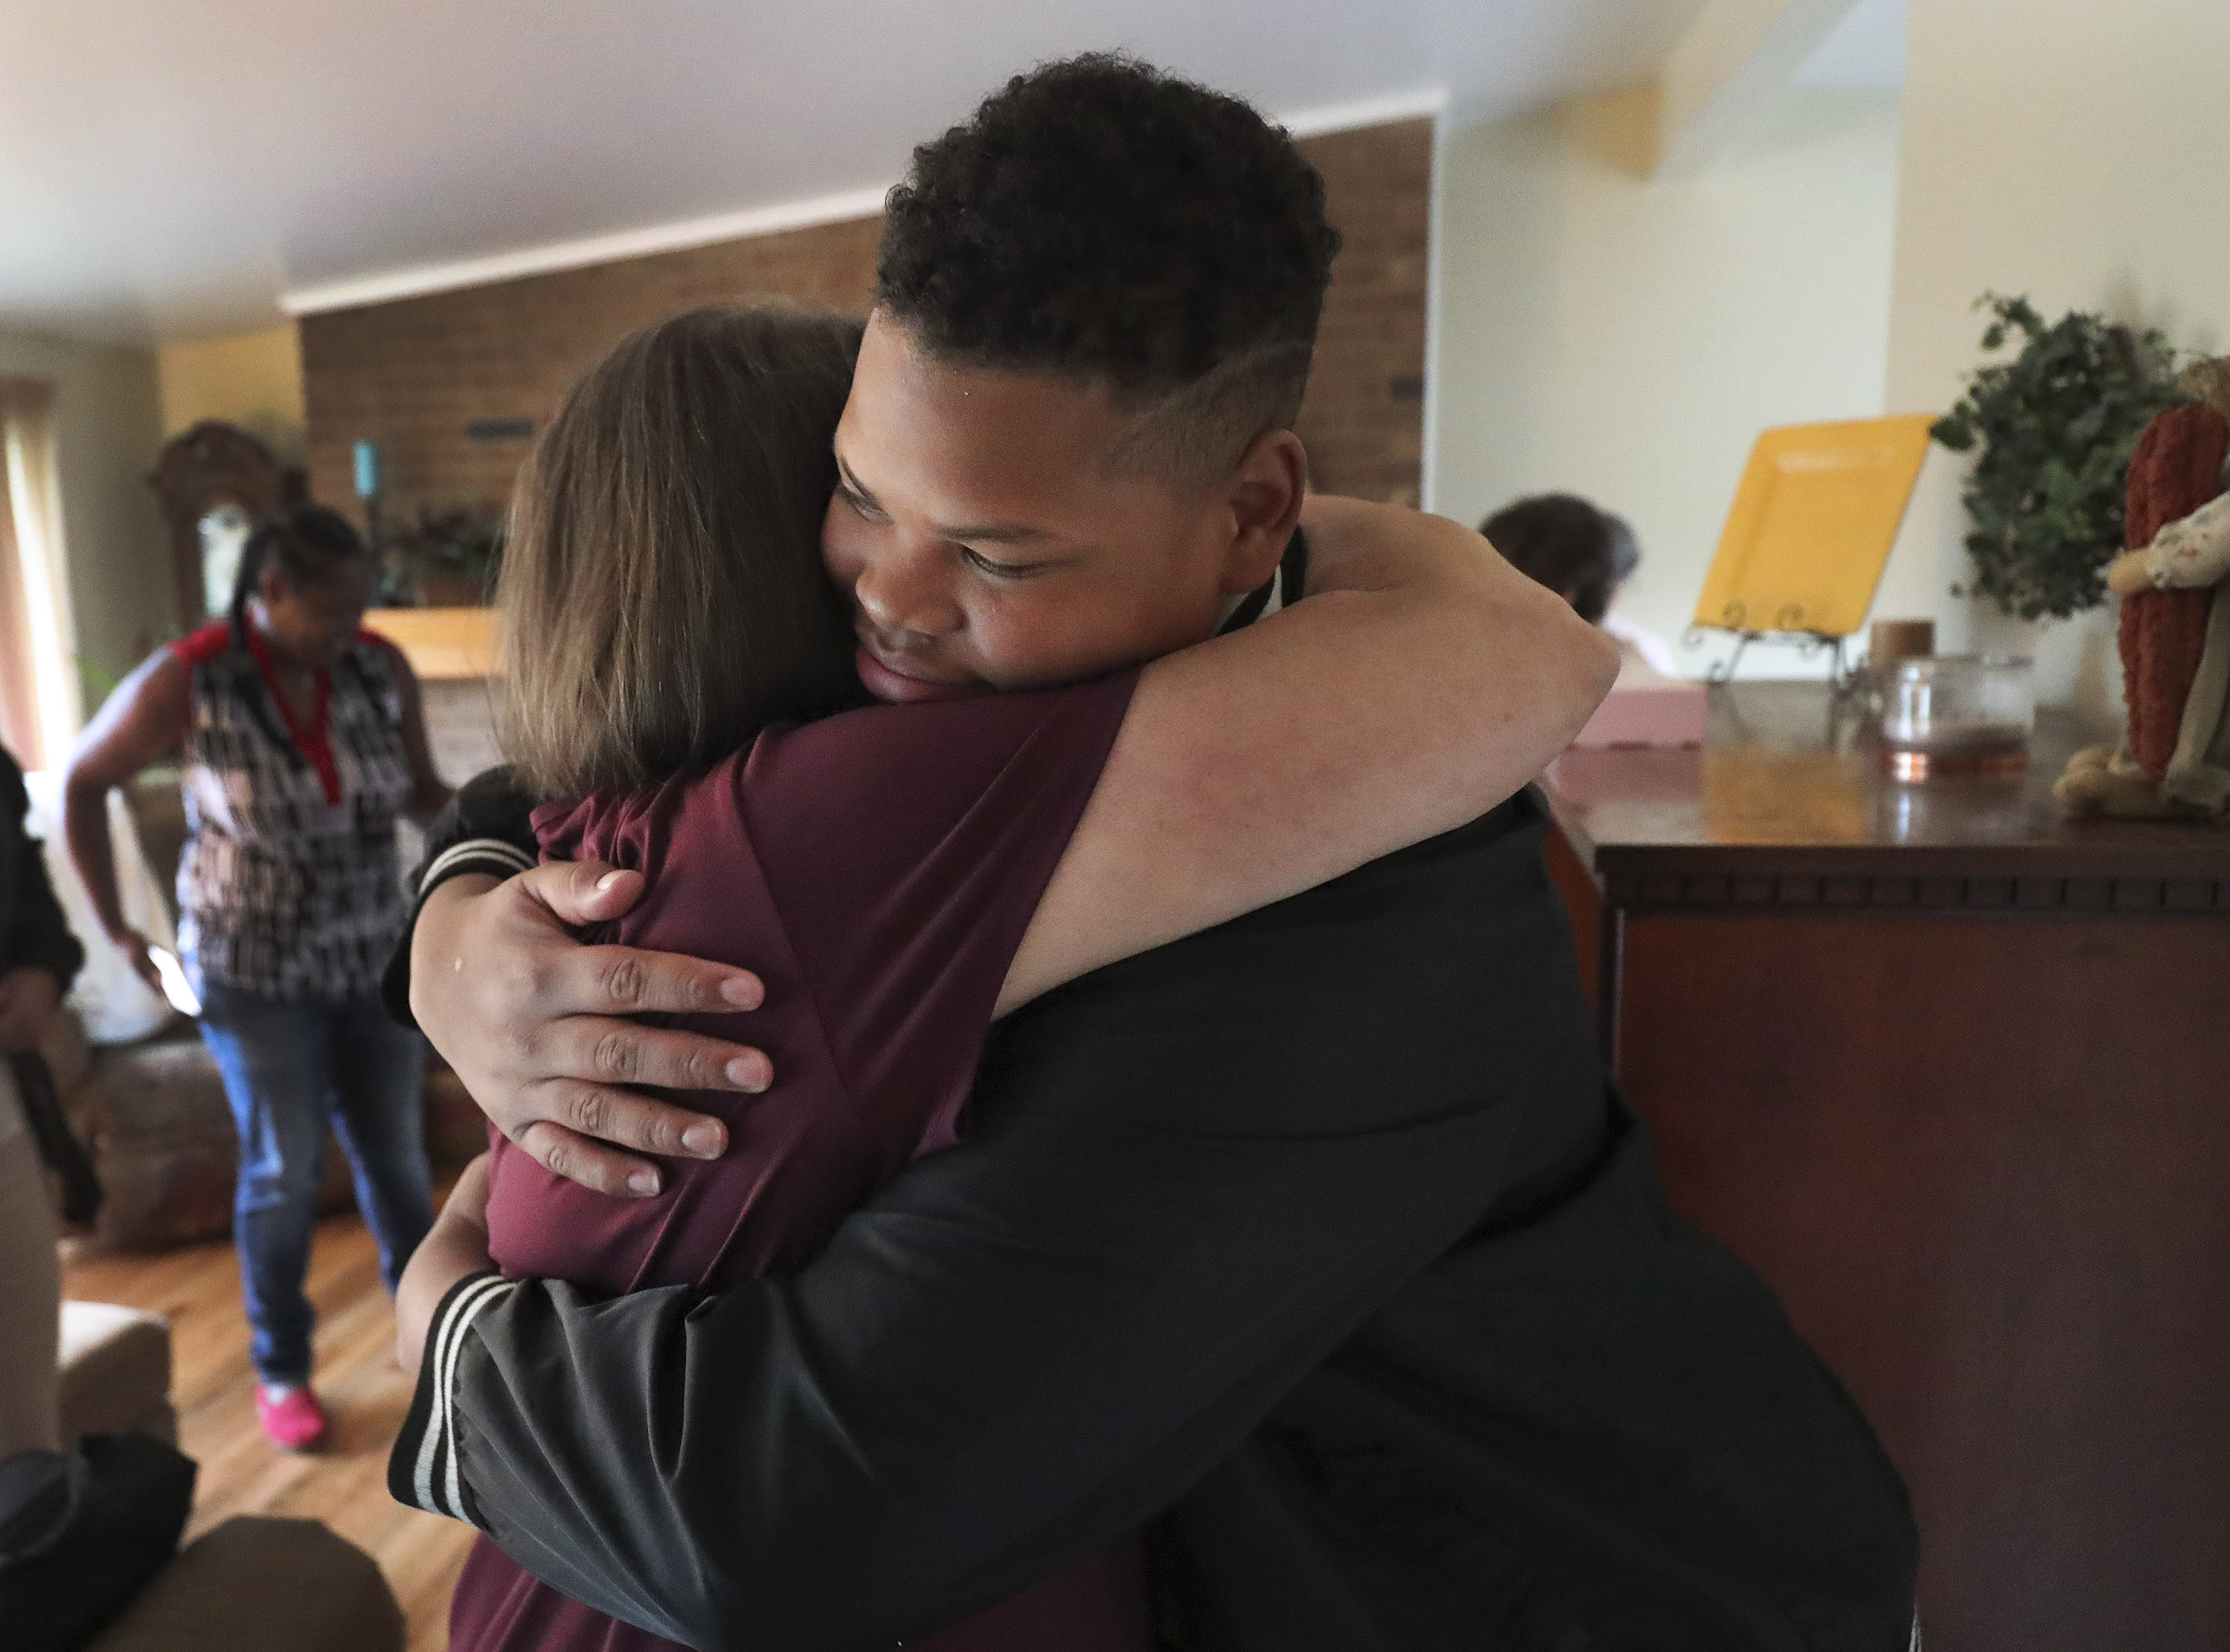 Damian Jackson, right, hugs Terry Lemmon in Holladay on Thursday, Sept. 19, 2019. Jackson, a Highland High School student, accidentally left a dance invitation at Lemmon's house intended for fellow student.